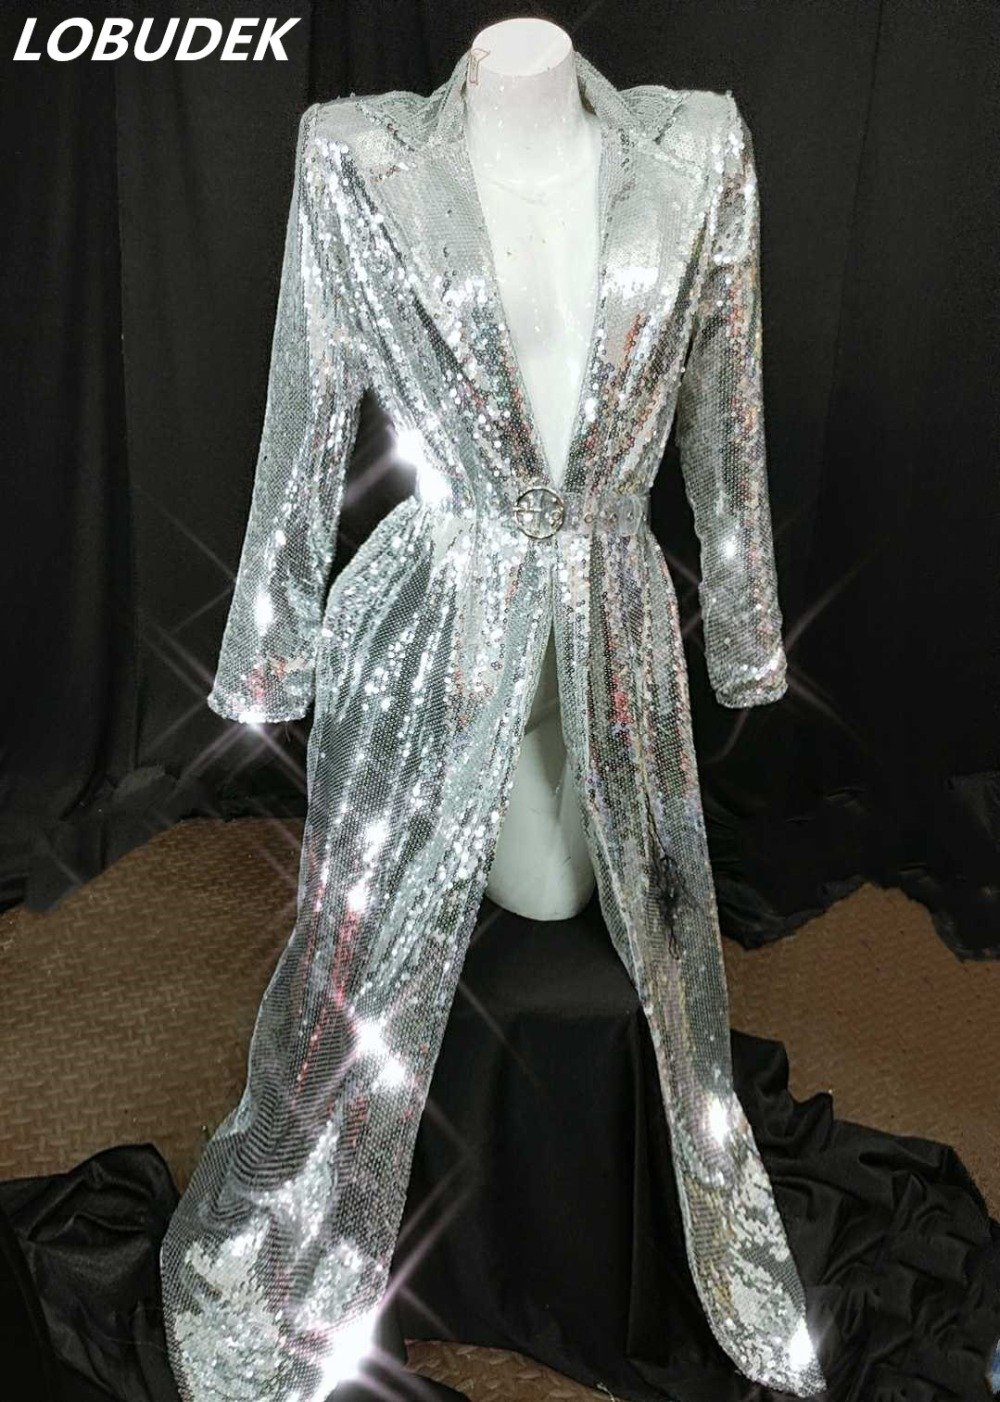 Fashion Buttonless Women Shiny Sequins Long Coat Female Singer Nightclub Concert Stage Performance Silver Cloak Dance